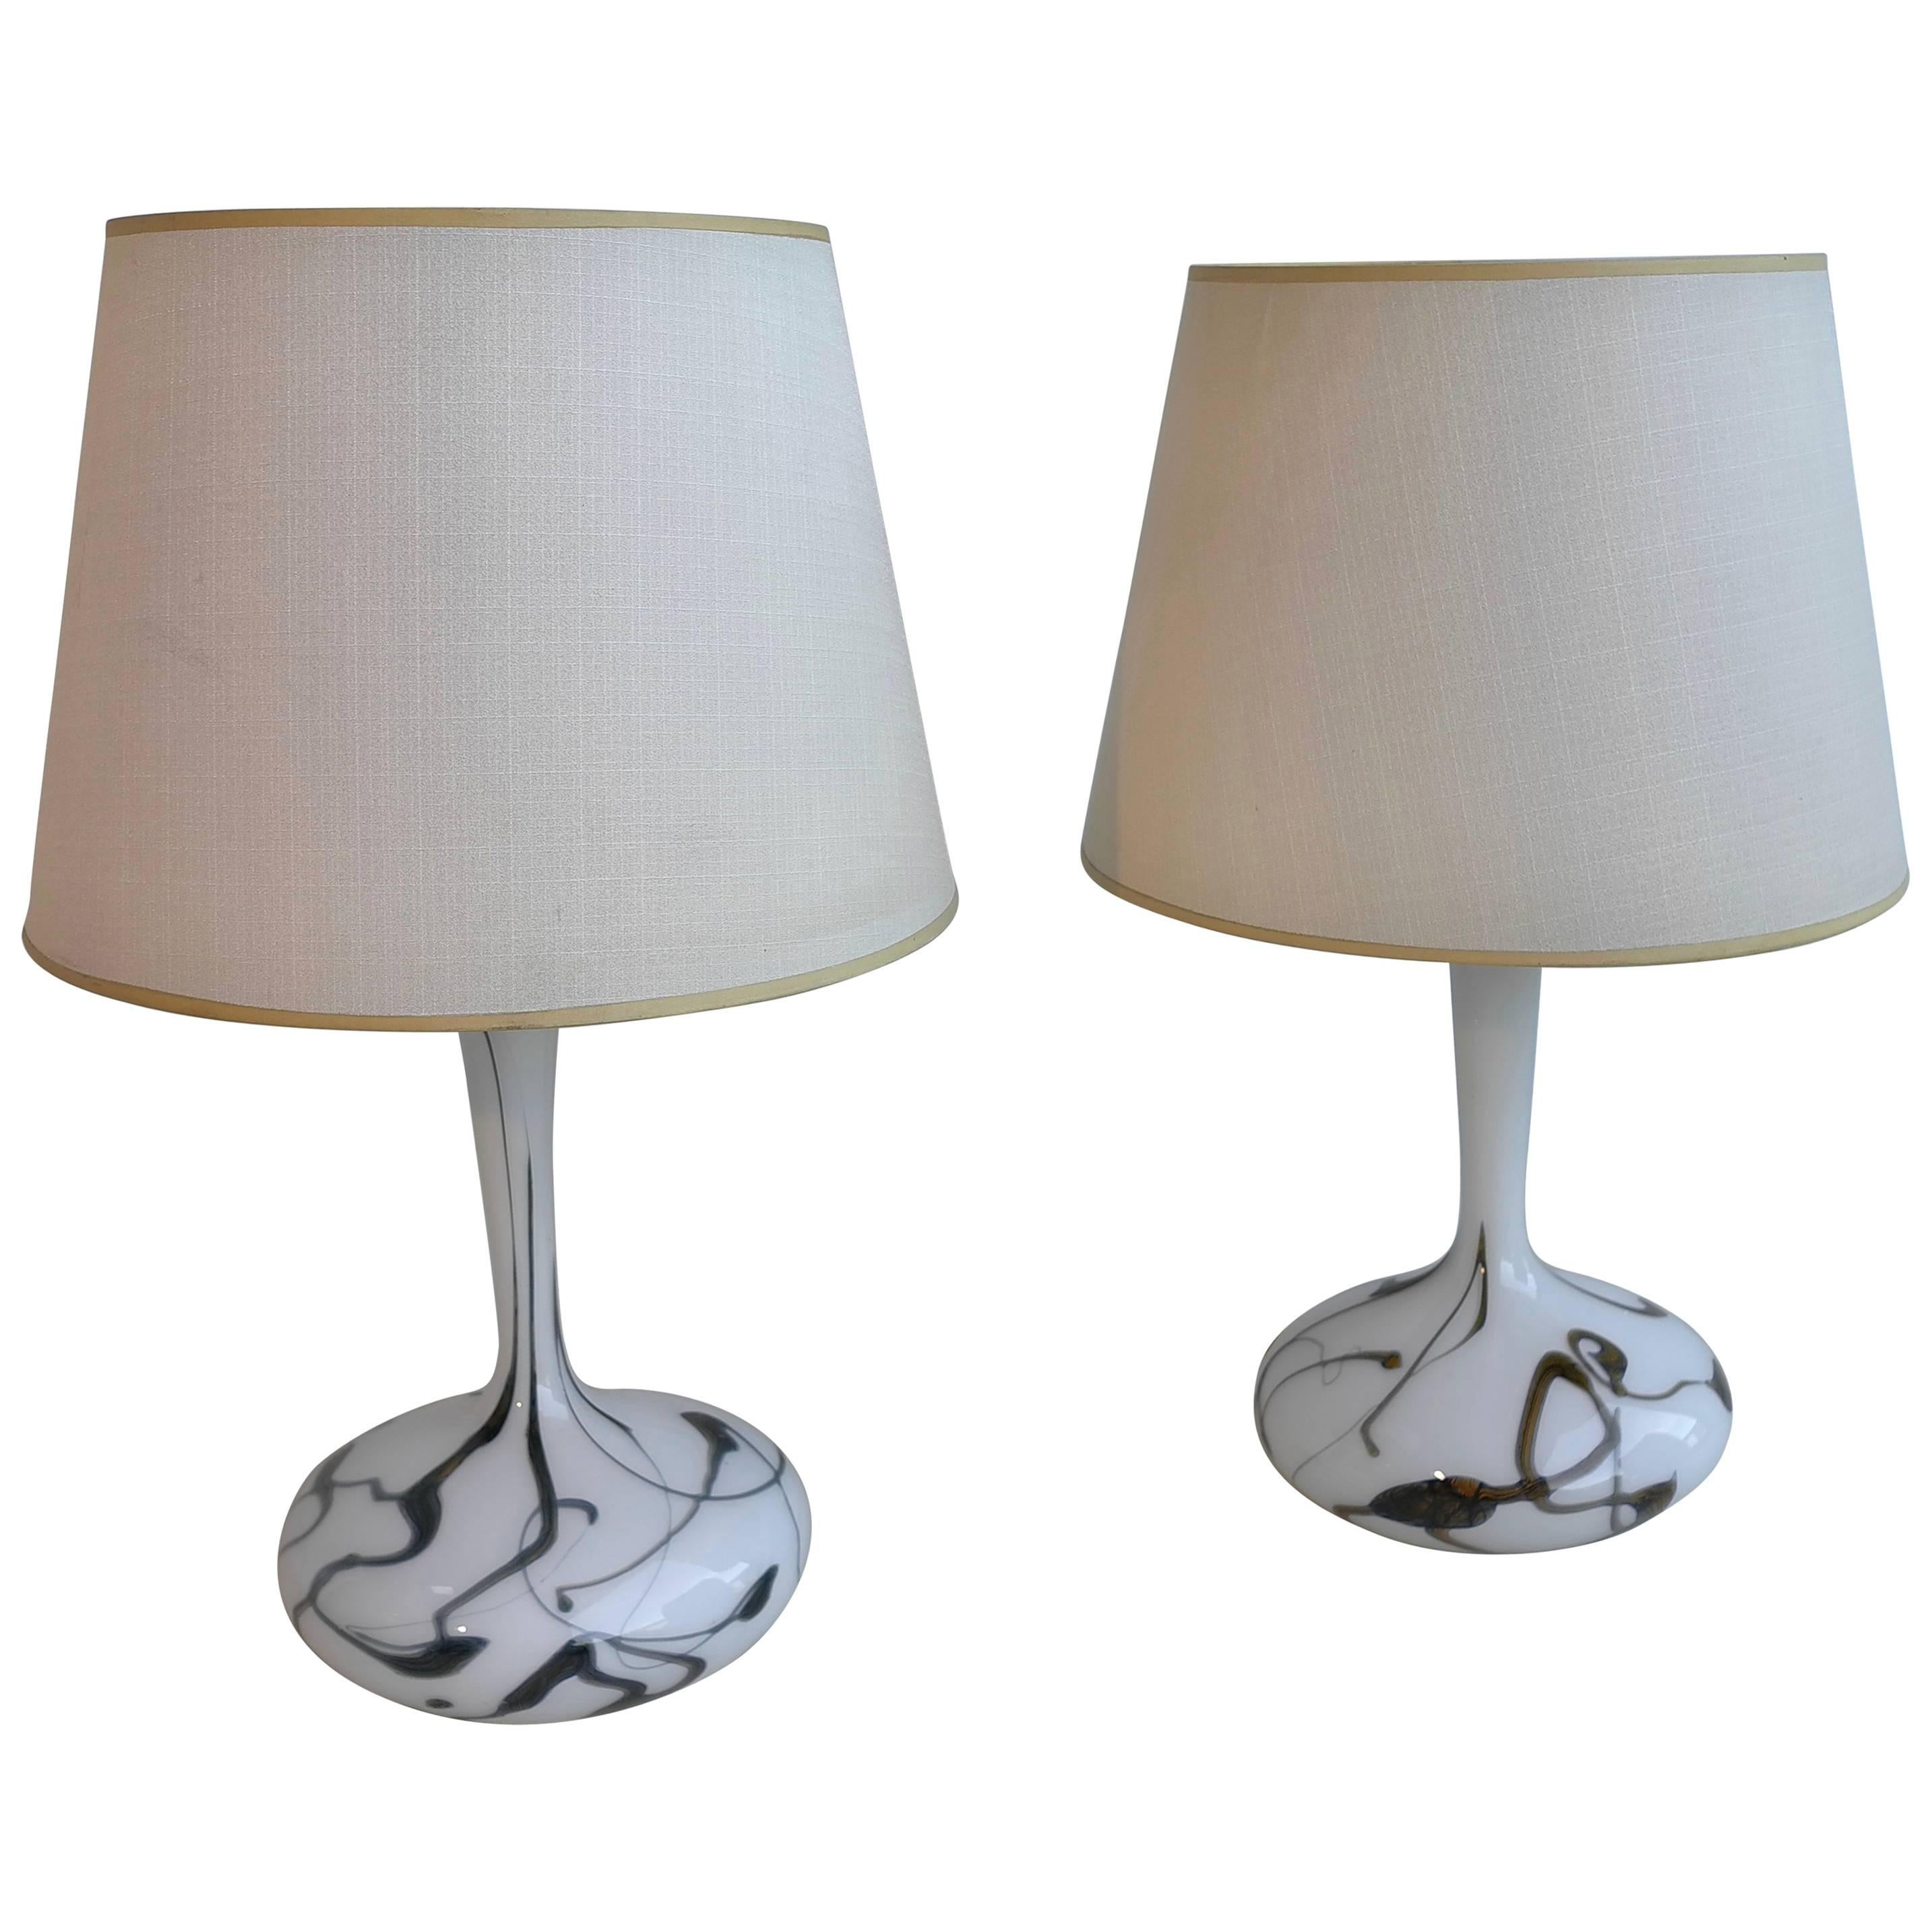 Pair of White Glass Murano Art Table Lamps, Italy, 1960s